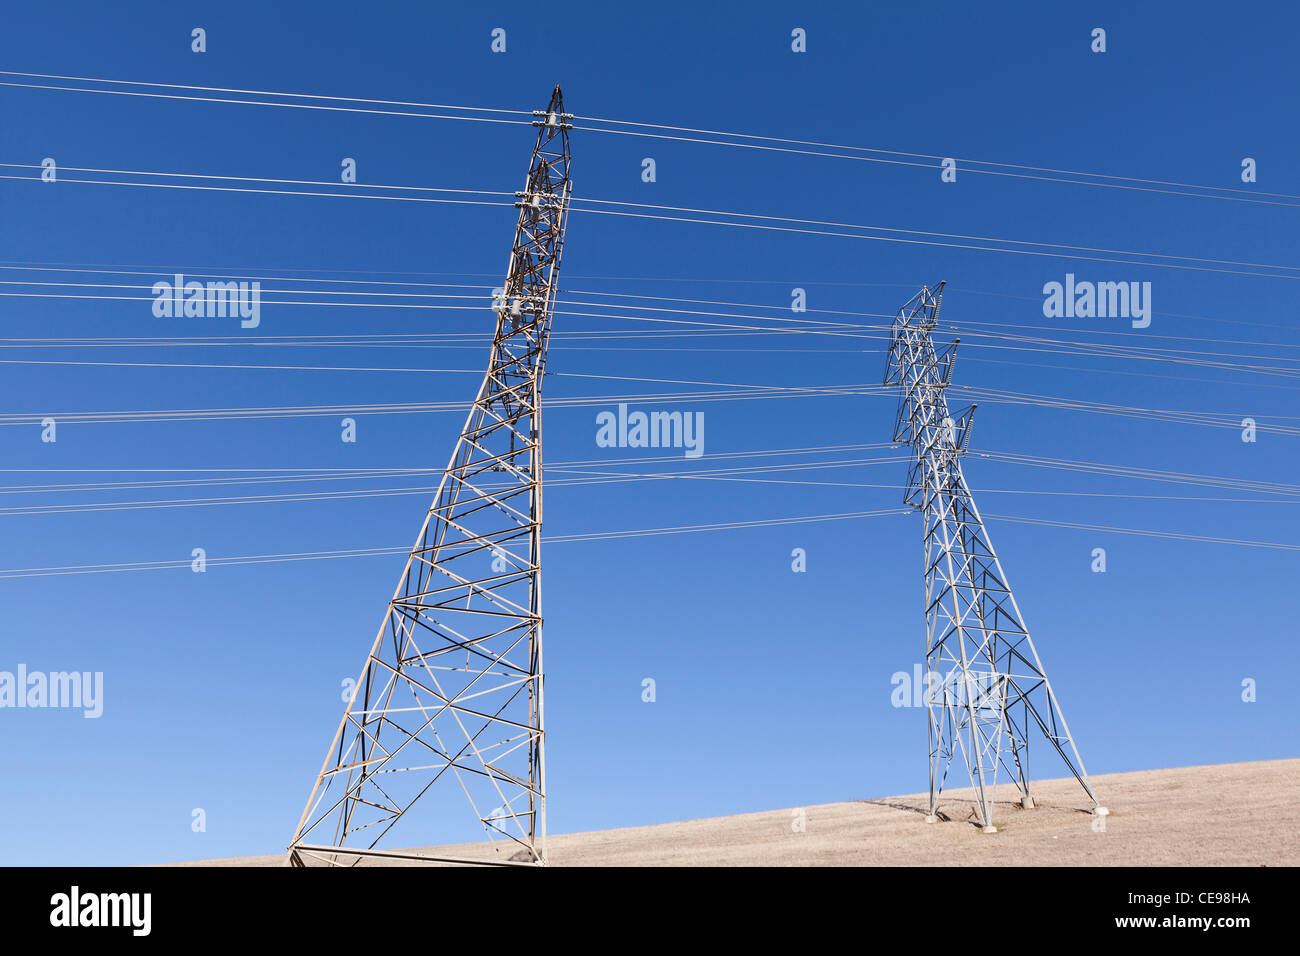 Electricity pylons against blue sky - California, USA - Stock Image